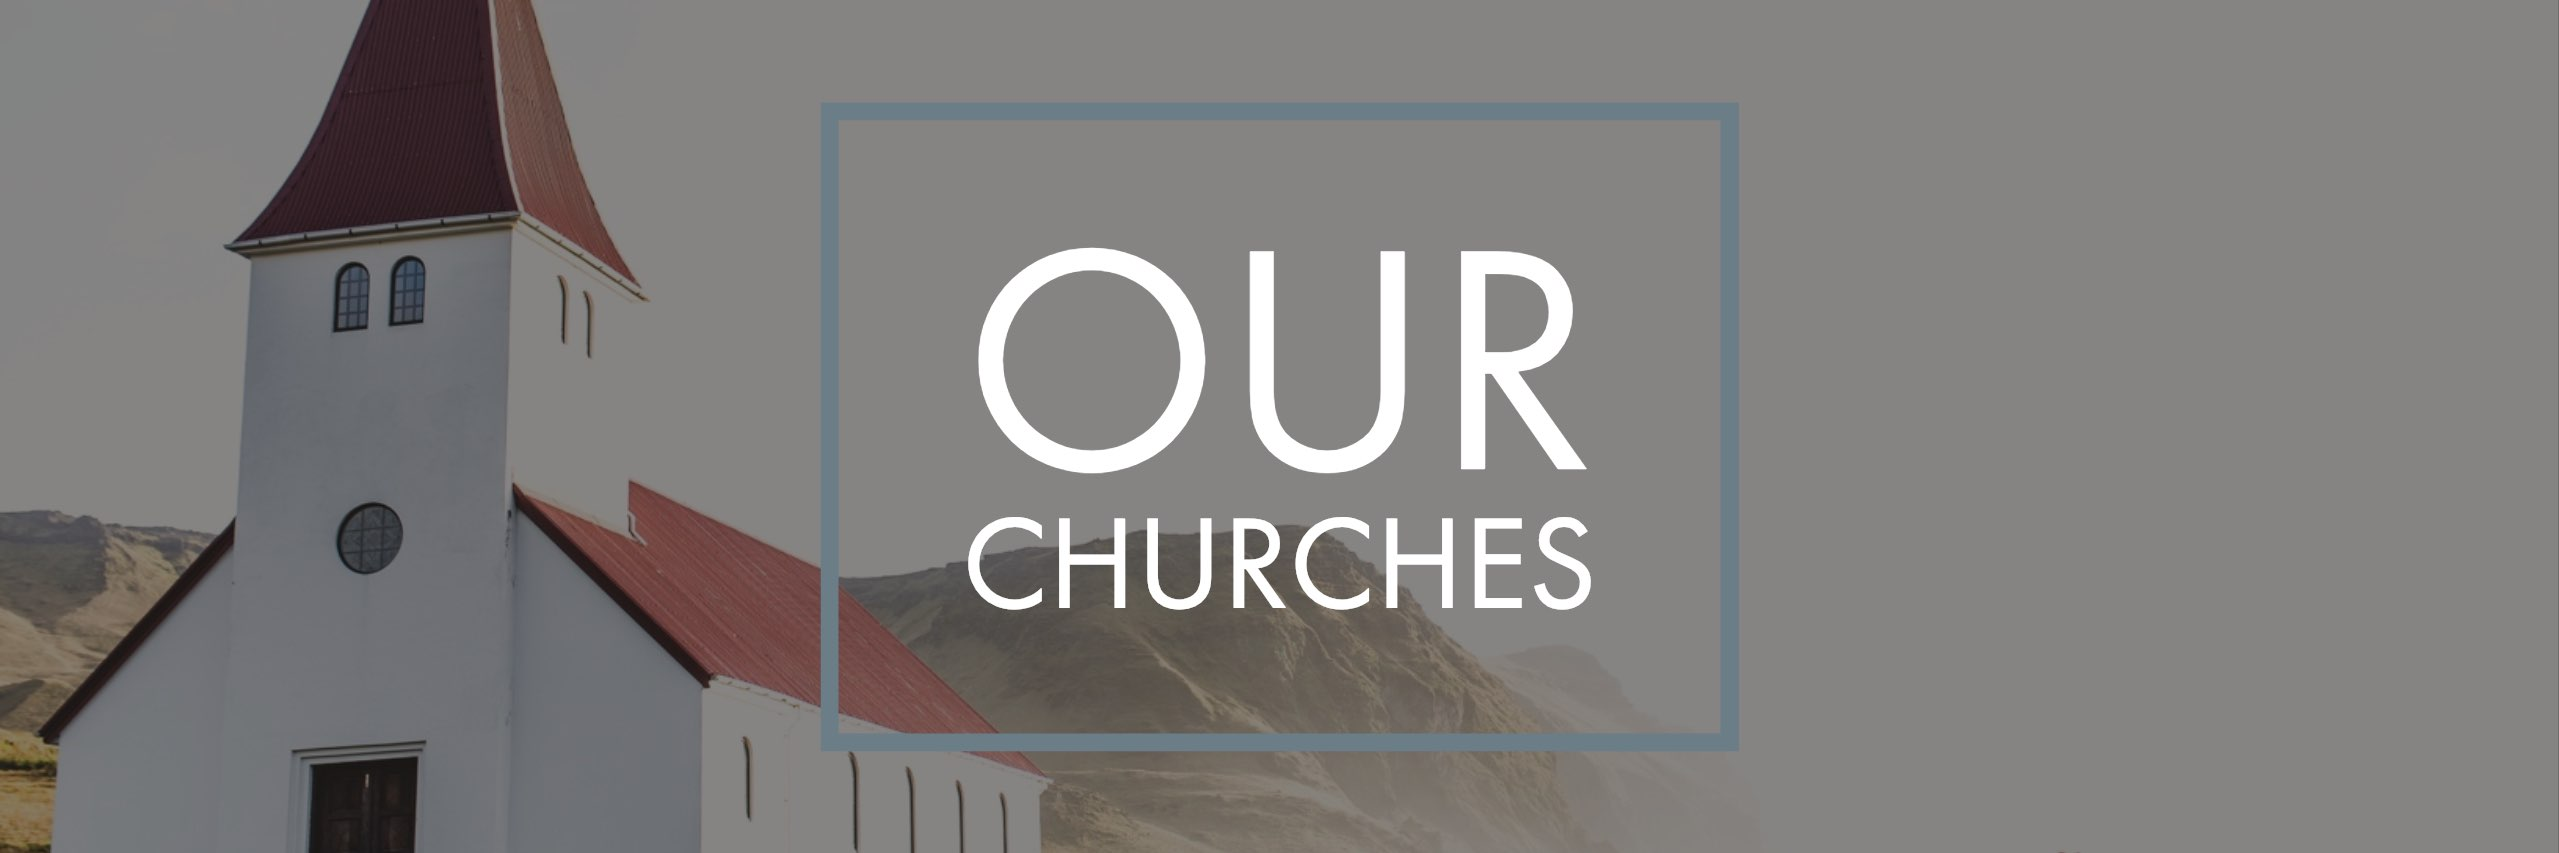 Our Churches